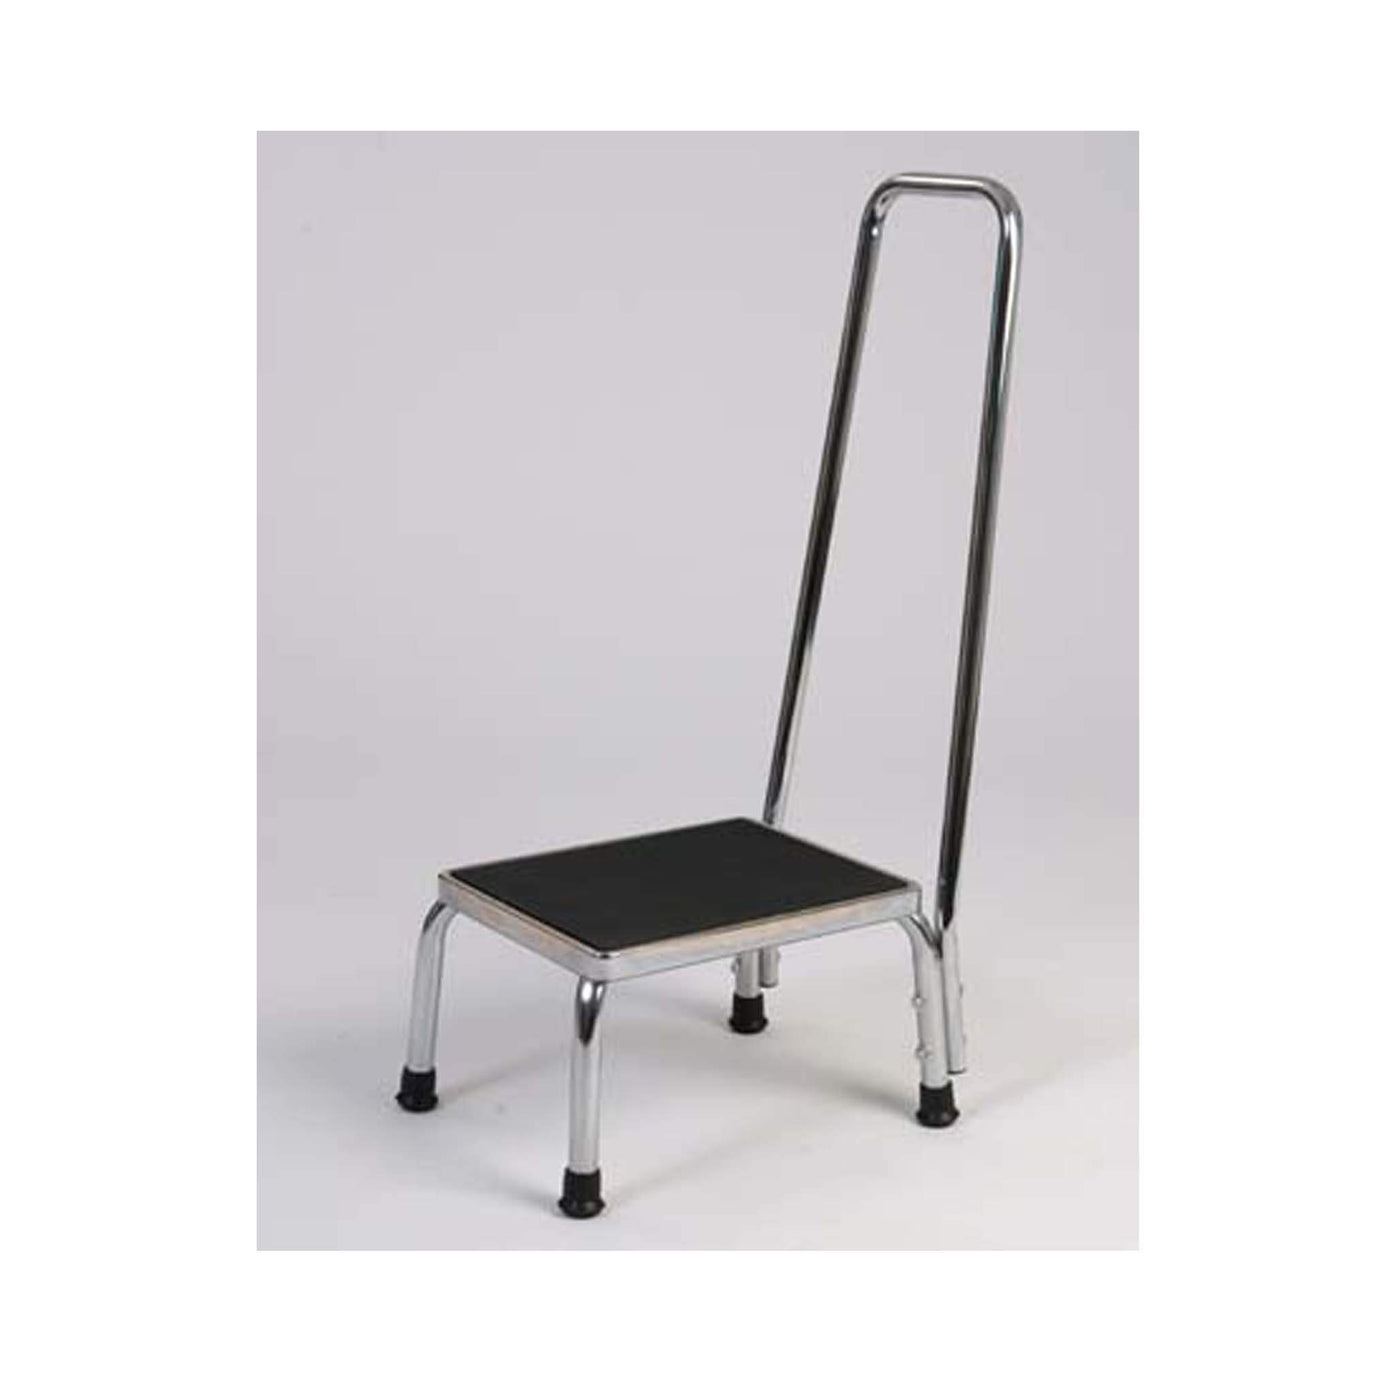 Groovy Step Stool With Hand Rail At Meridian Medical Supply Dailytribune Chair Design For Home Dailytribuneorg